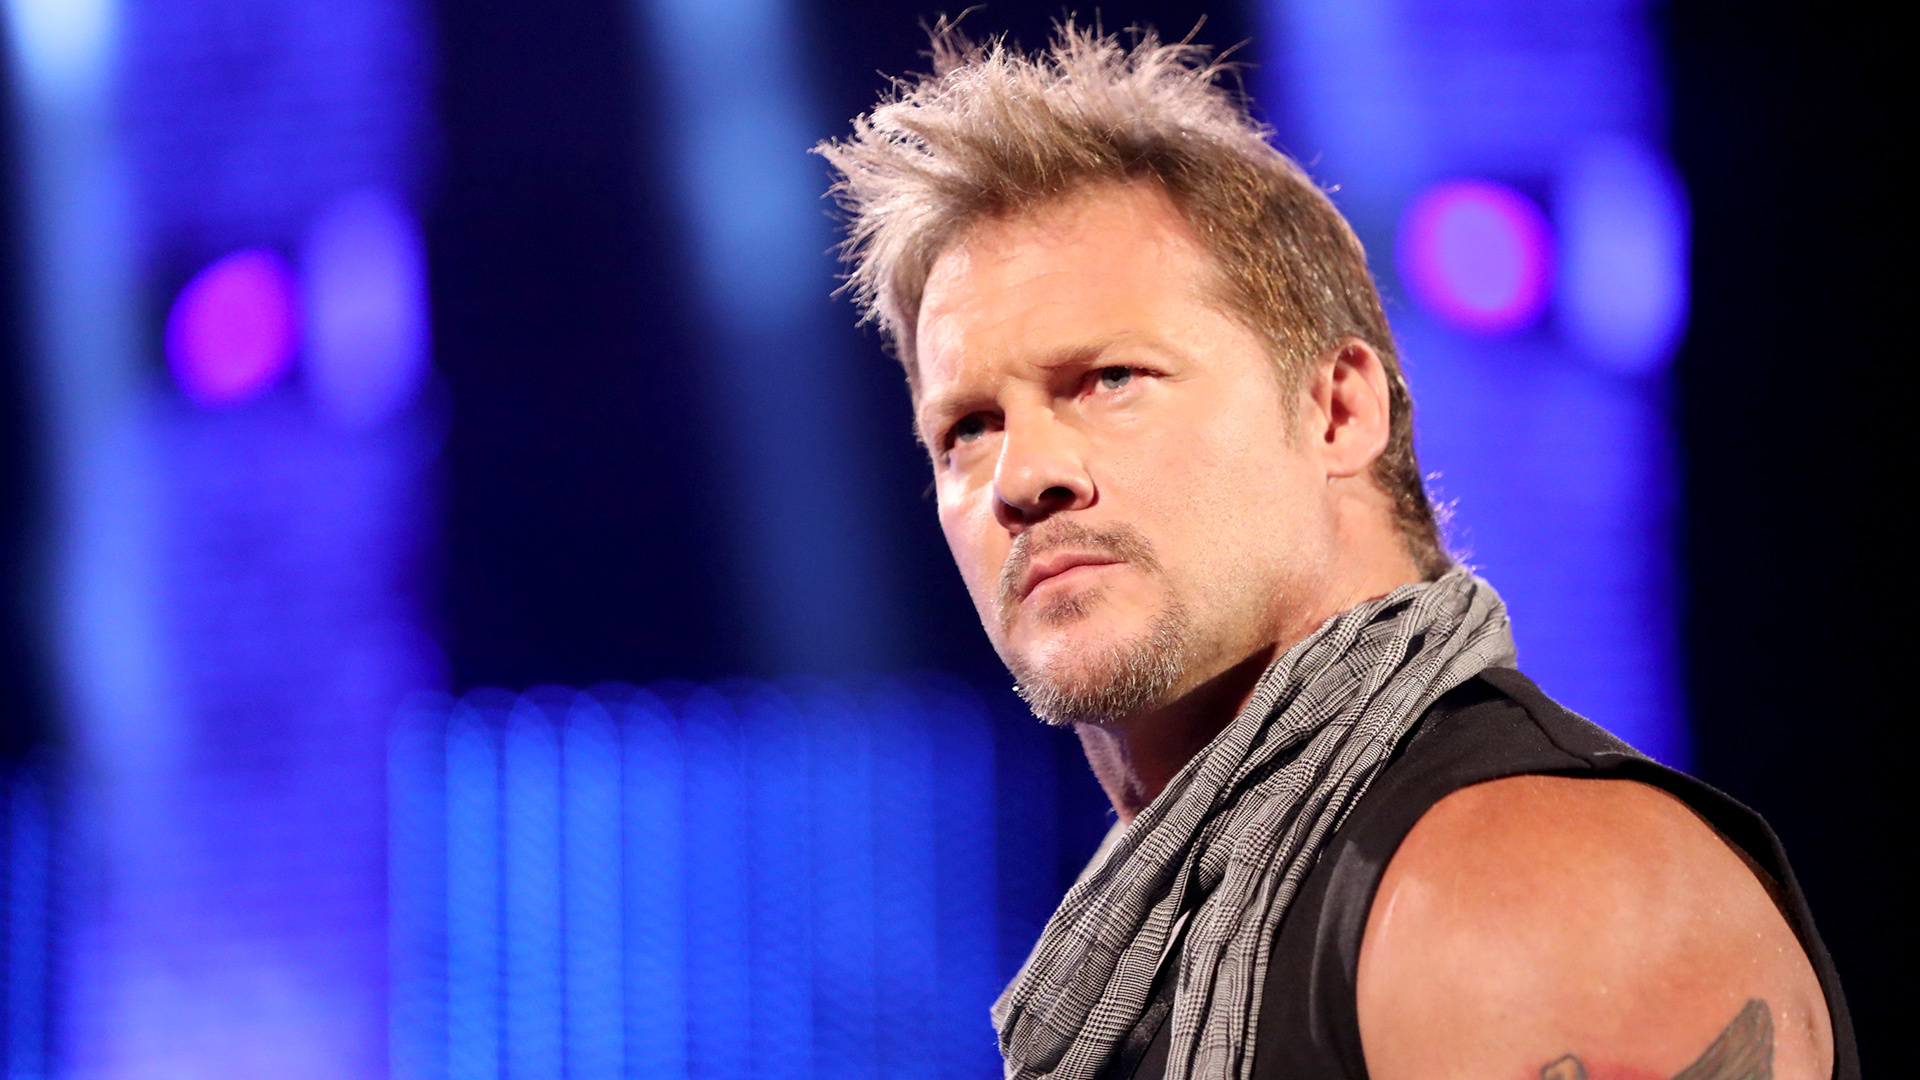 Chris Jericho Wallpapers Images Photos Pictures Backgrounds